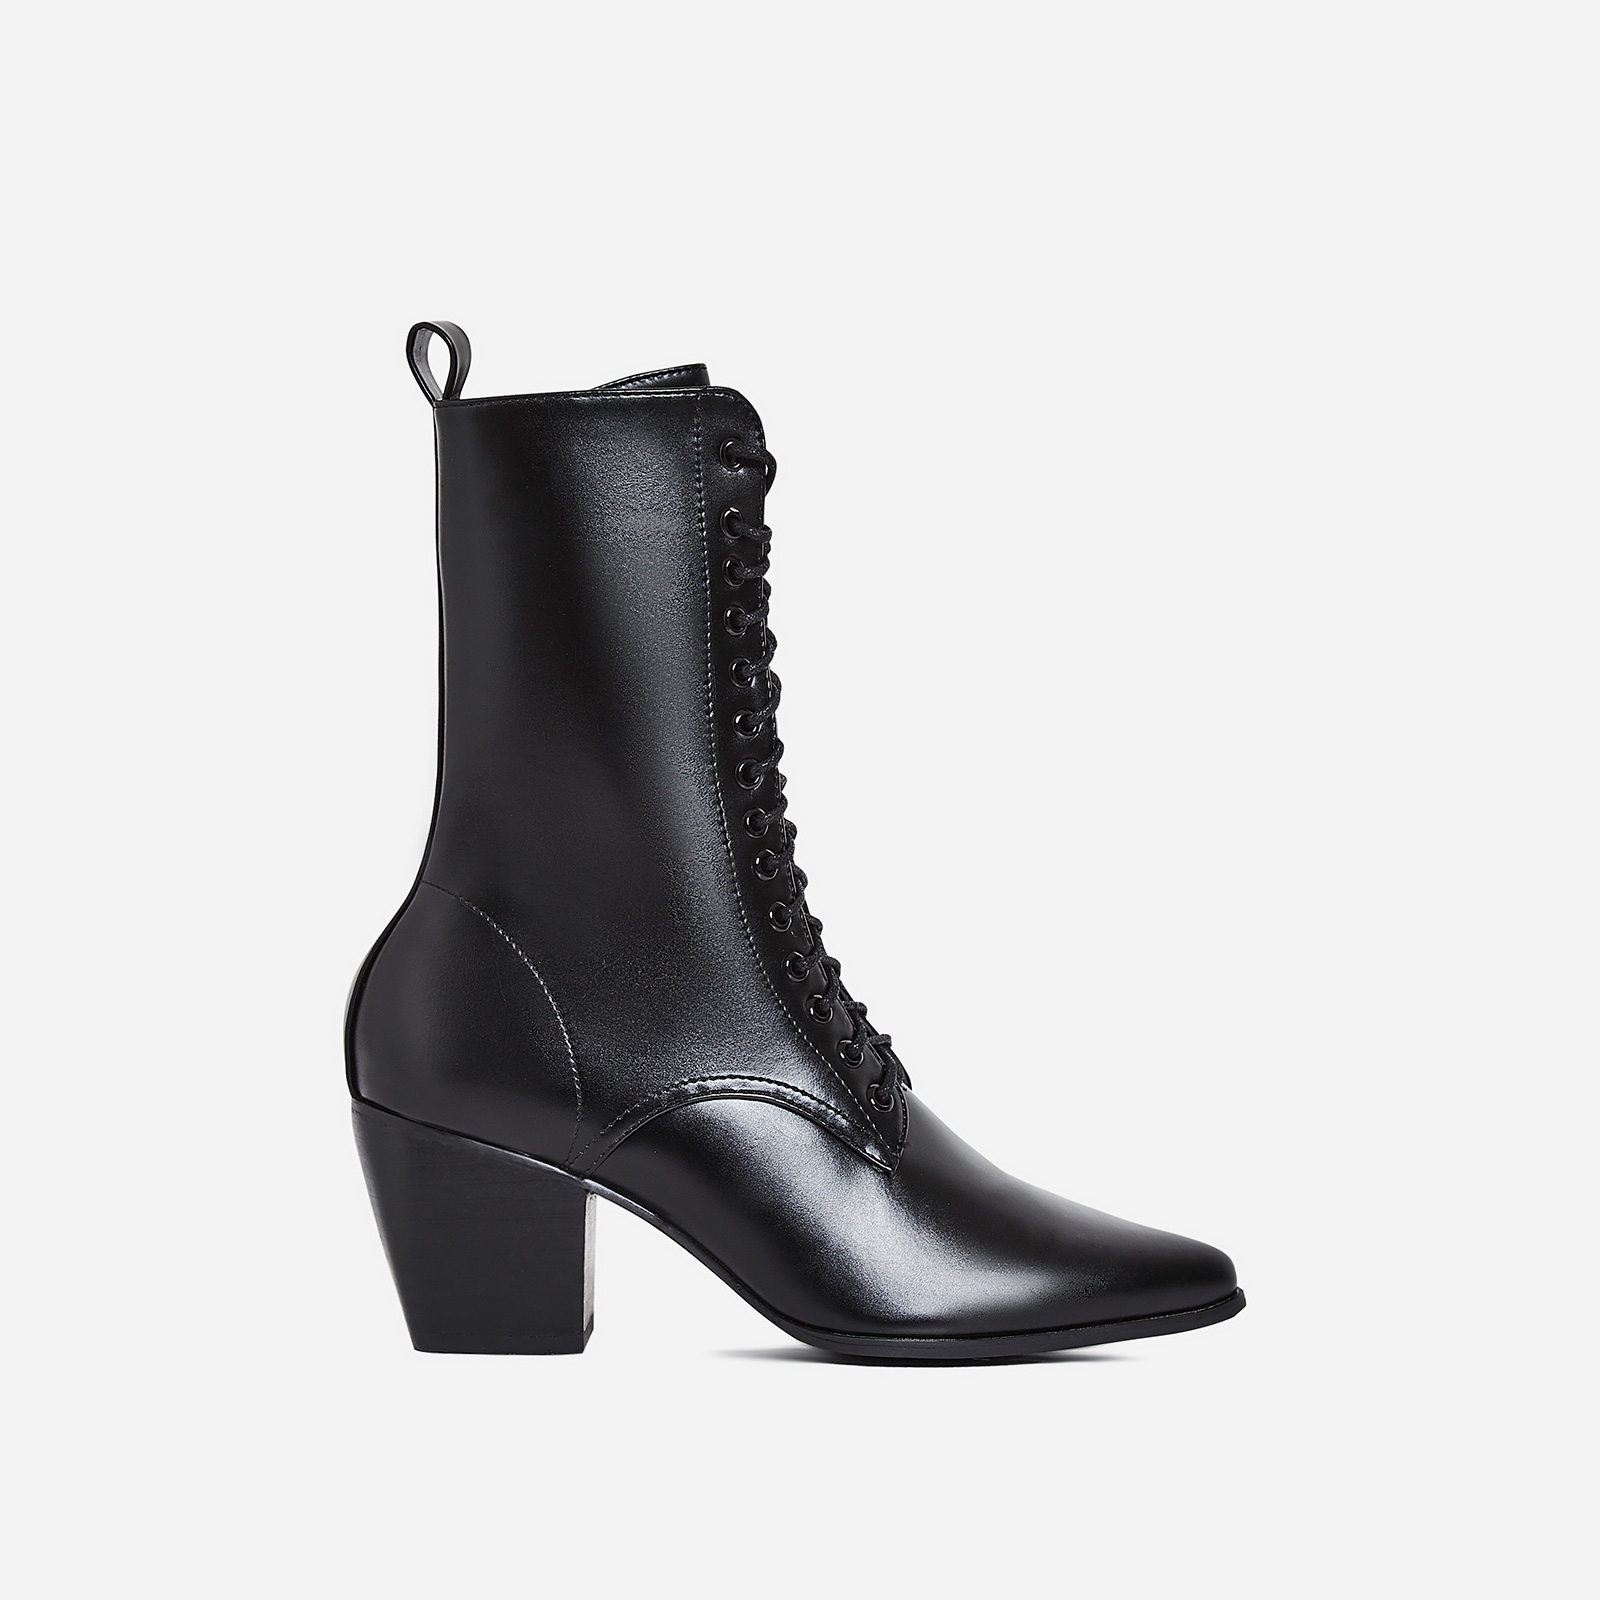 Corley Lace Up Ankle Boot In Black Faux Leather